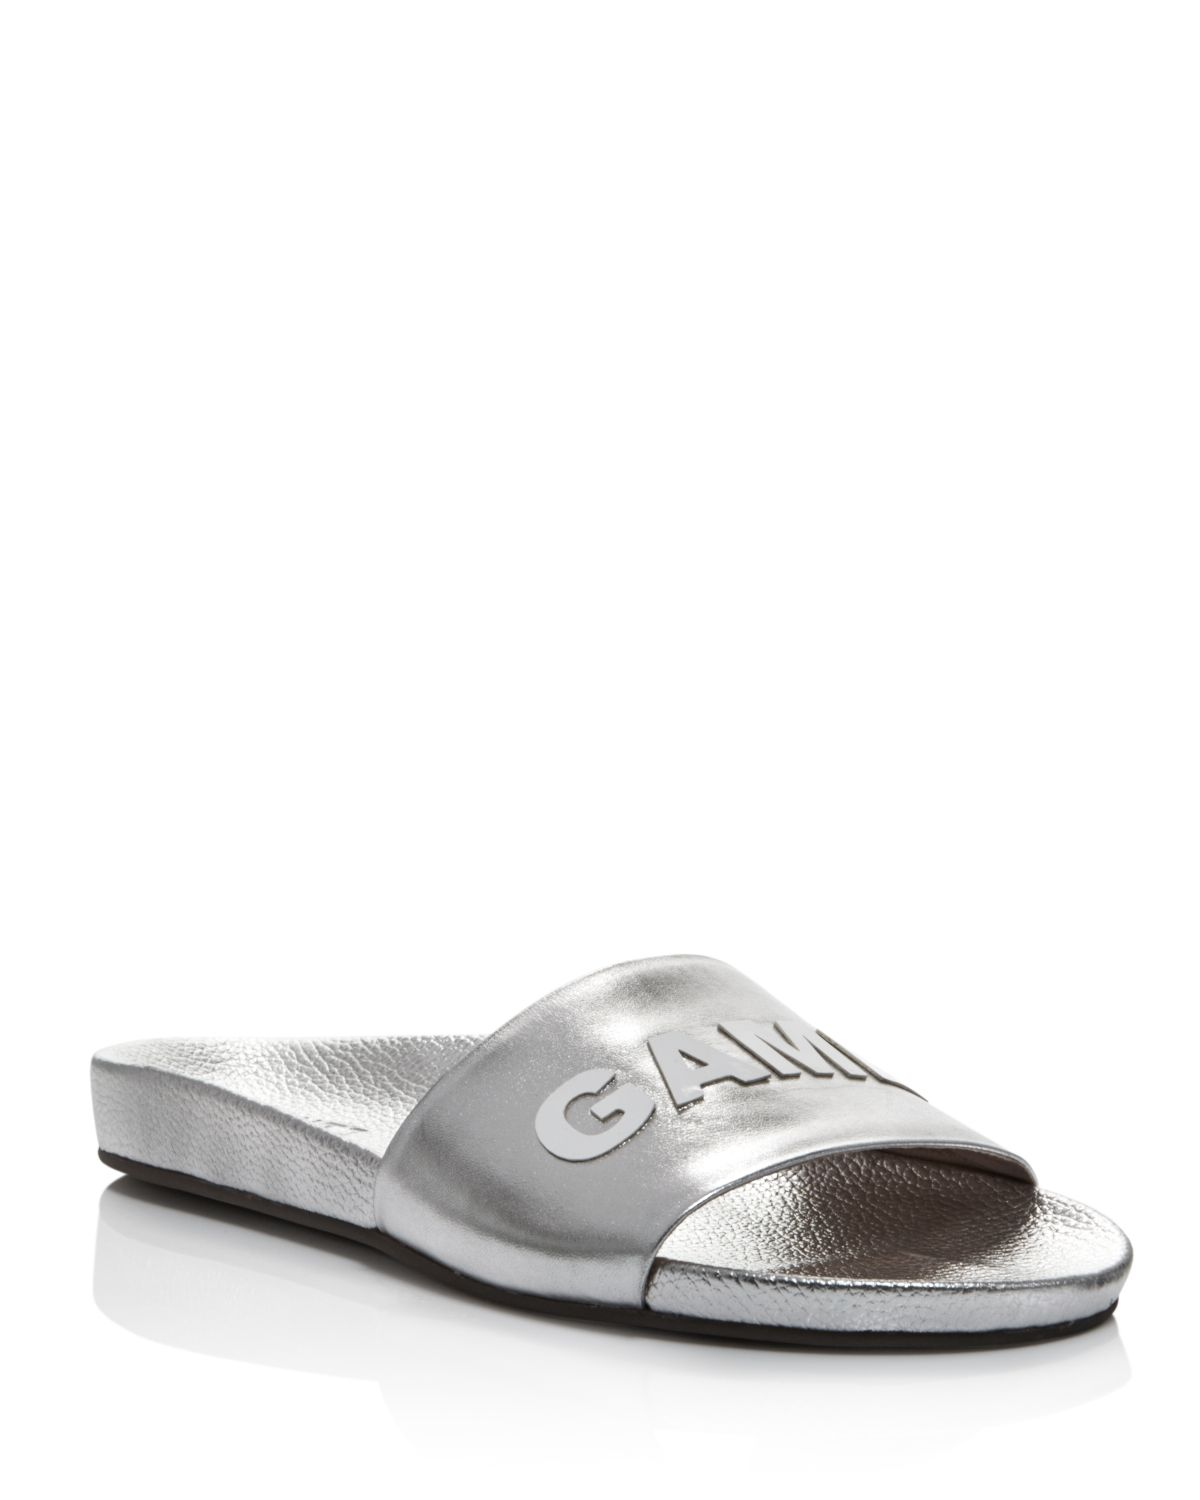 Schutz Women's Game Over Leather Pool Slide Sandals - 100% Exclusive